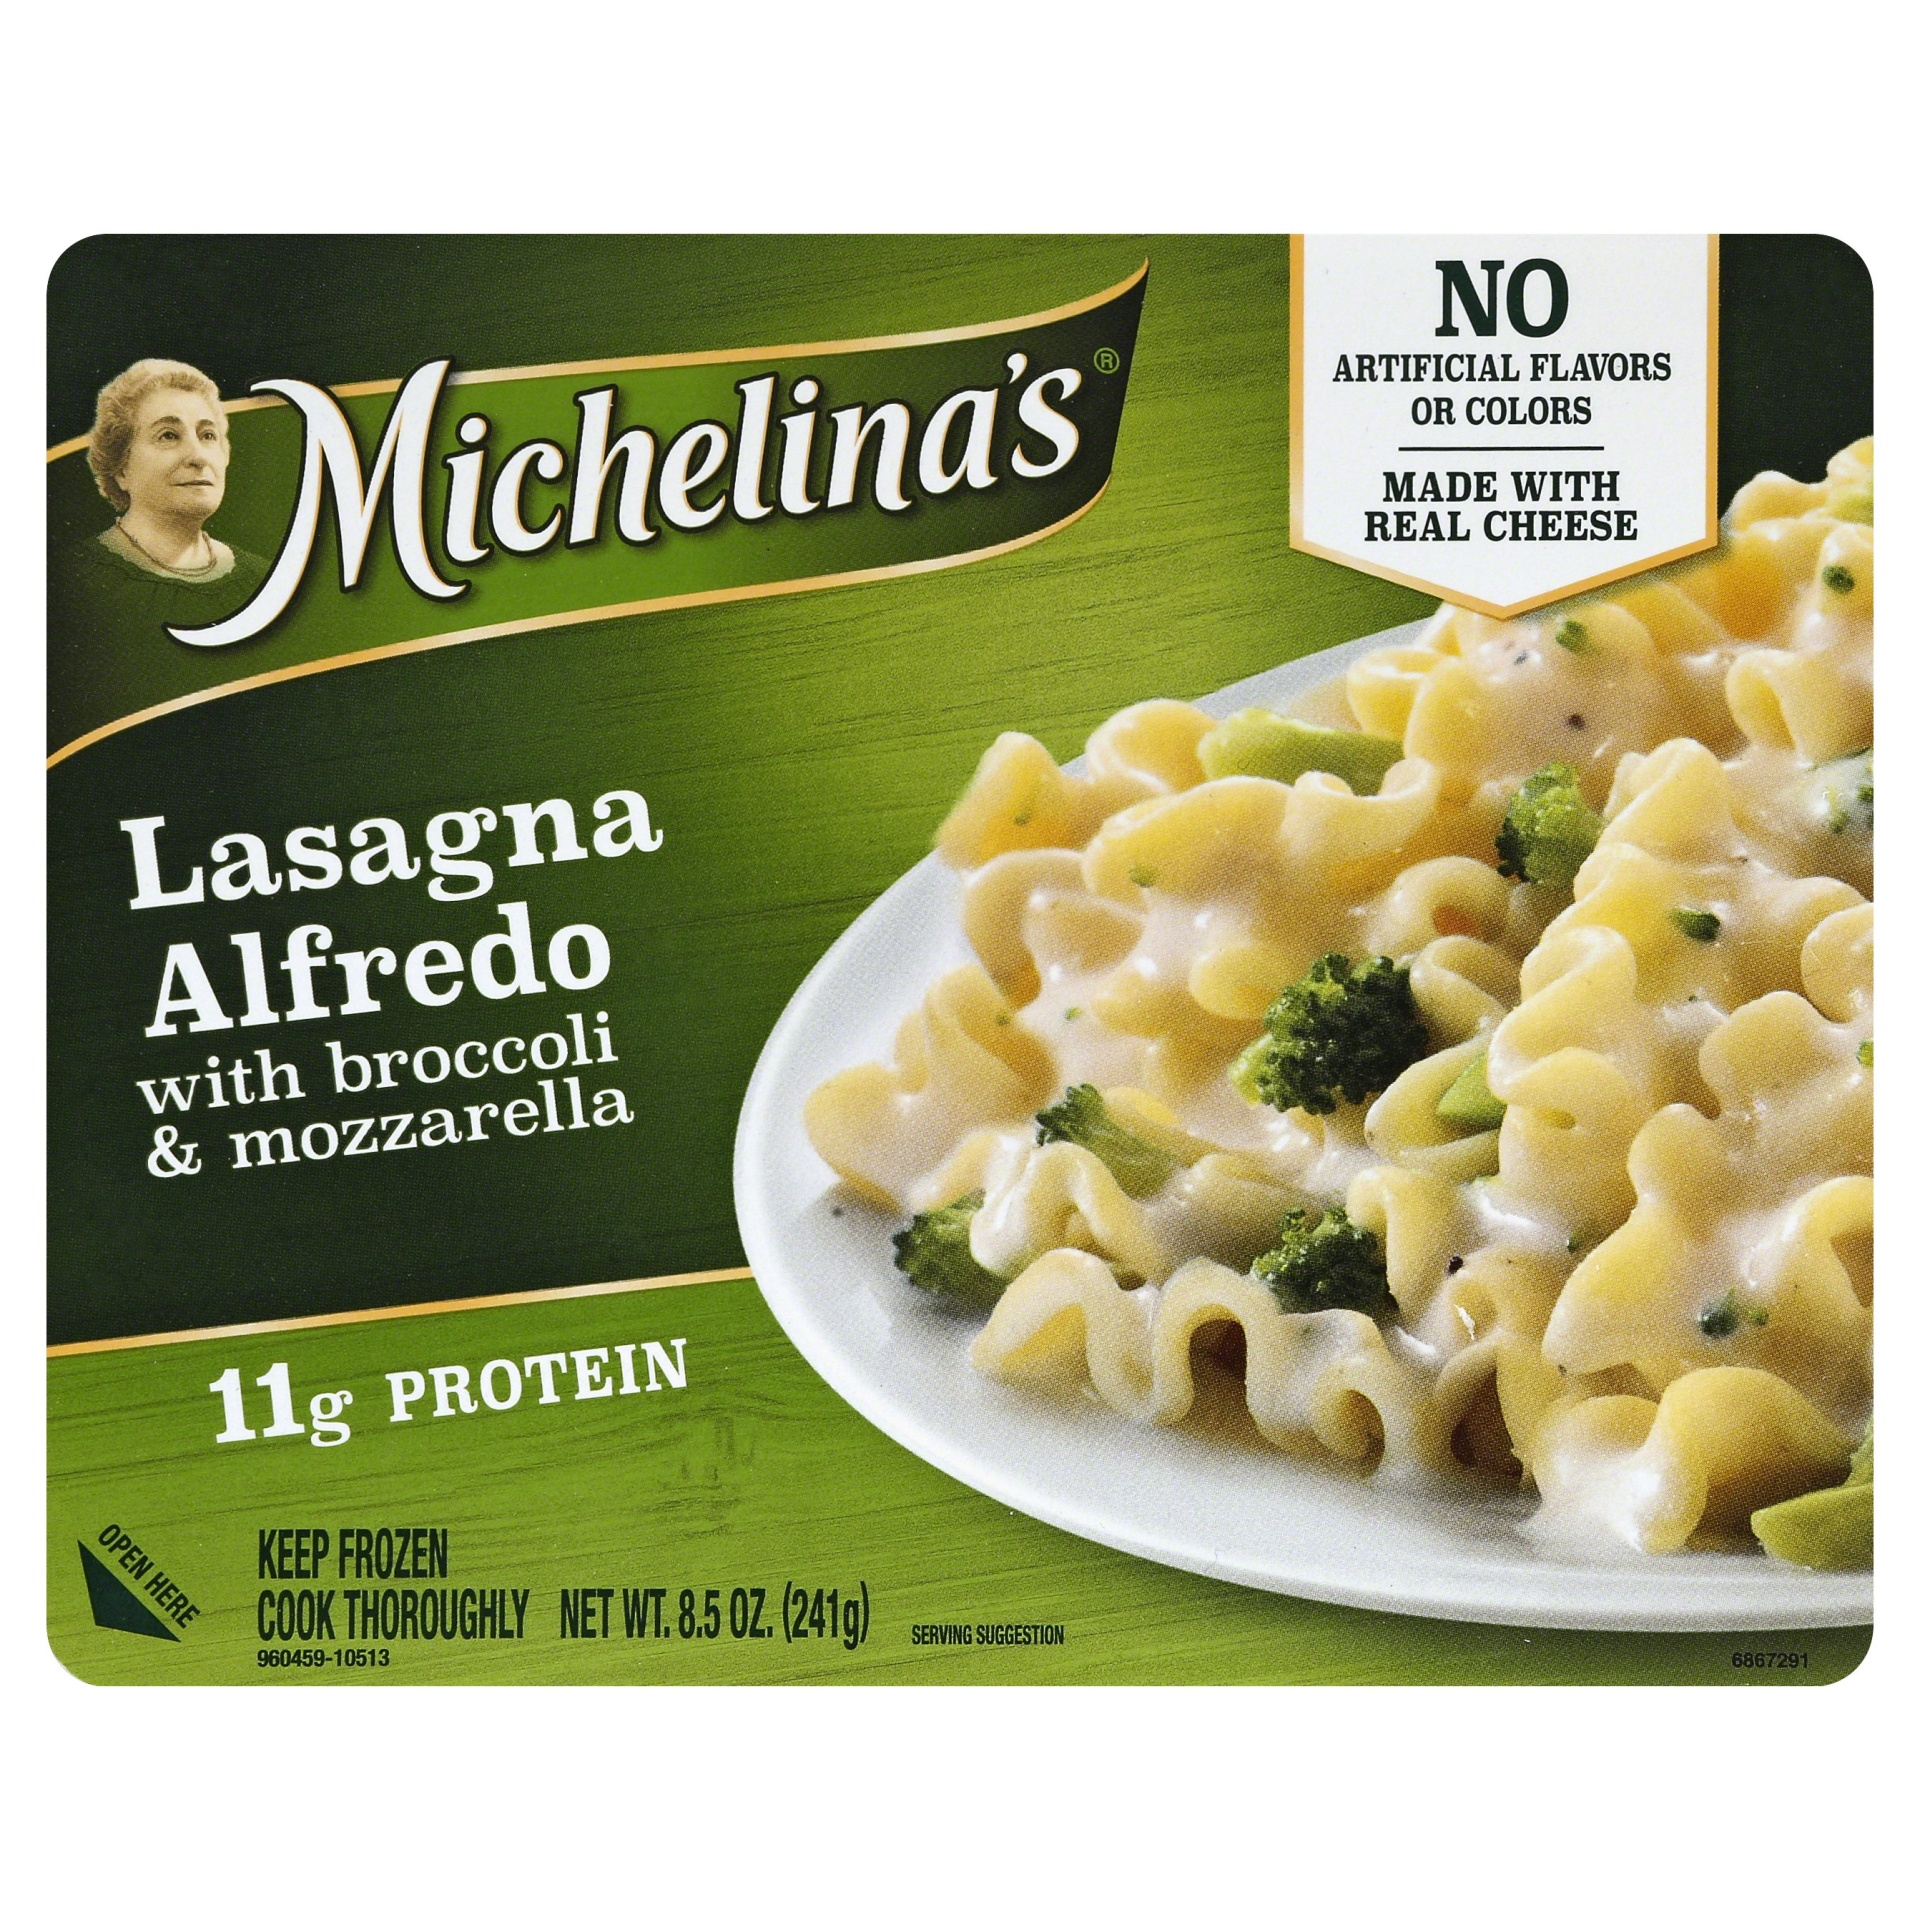 slide 1 of 6, Michelina's Lasagna Alfredo With Broccoli Mozzarella,